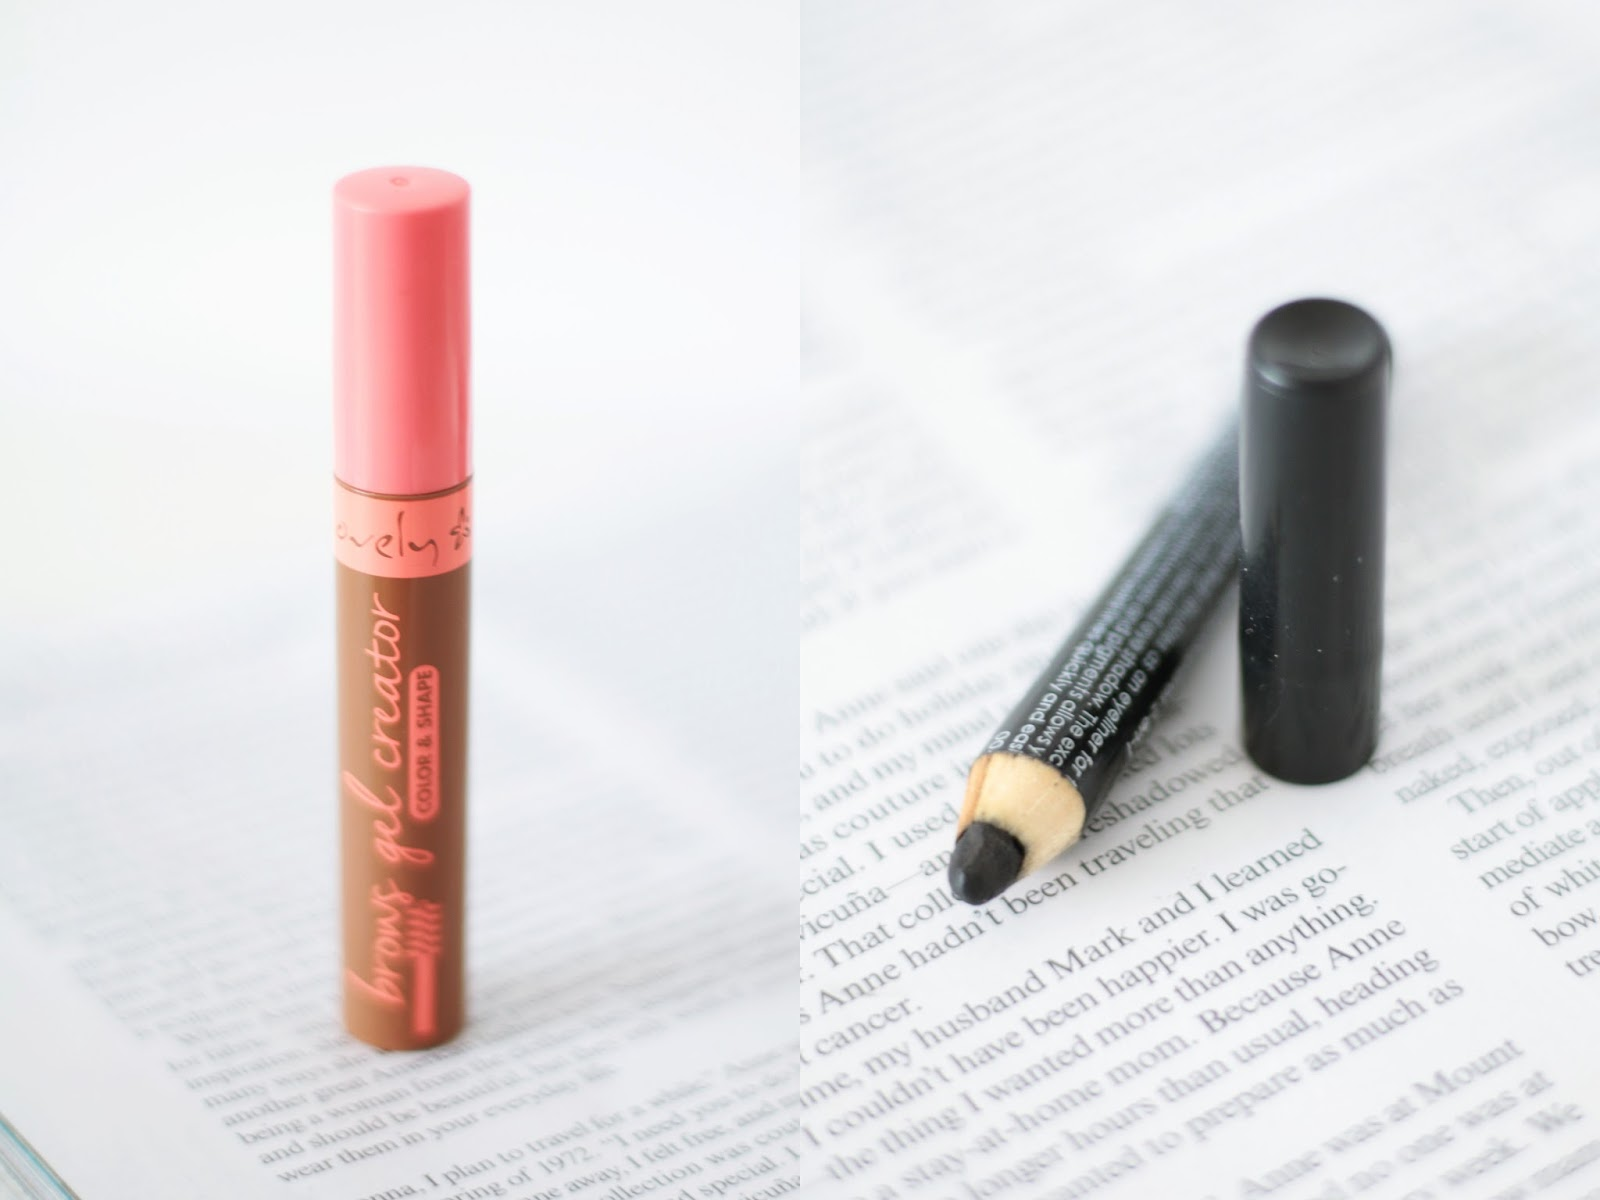 JELLY PONG PONG 2-IN-1 EYELINER&SCHADOW KREDKA DO OCZU opinie blog